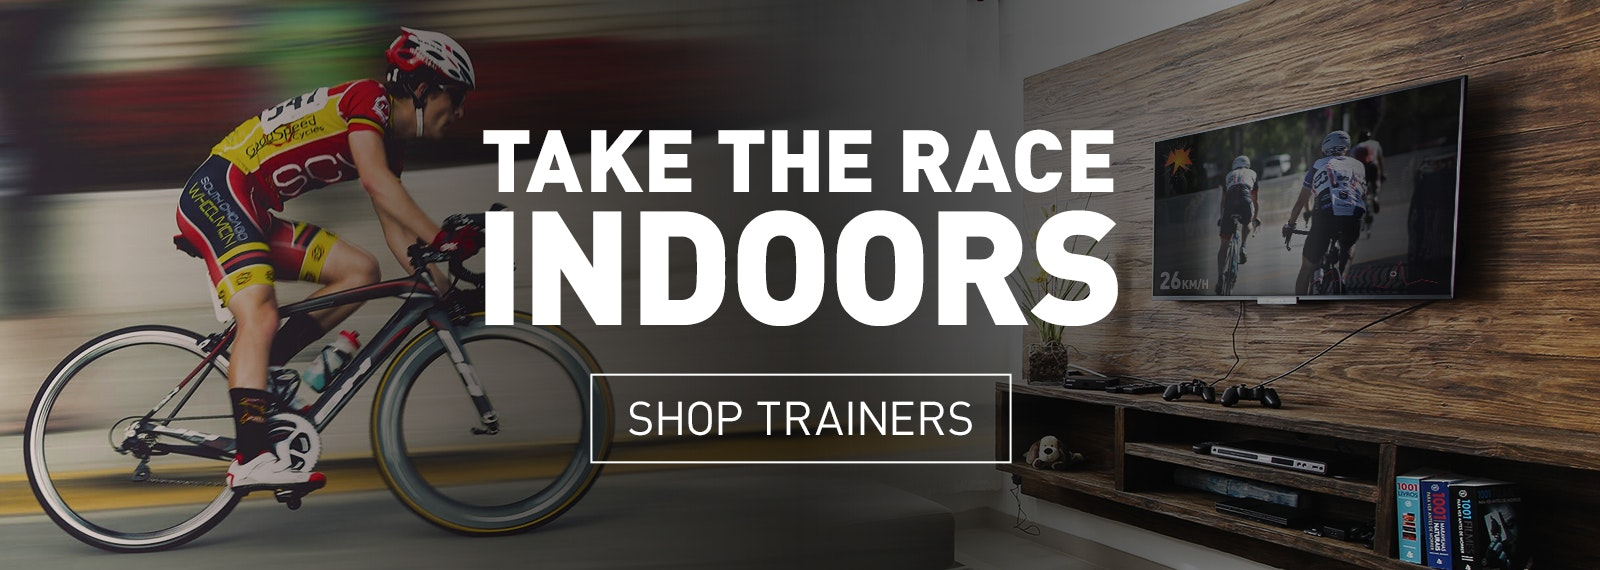 Take the Race Indoors